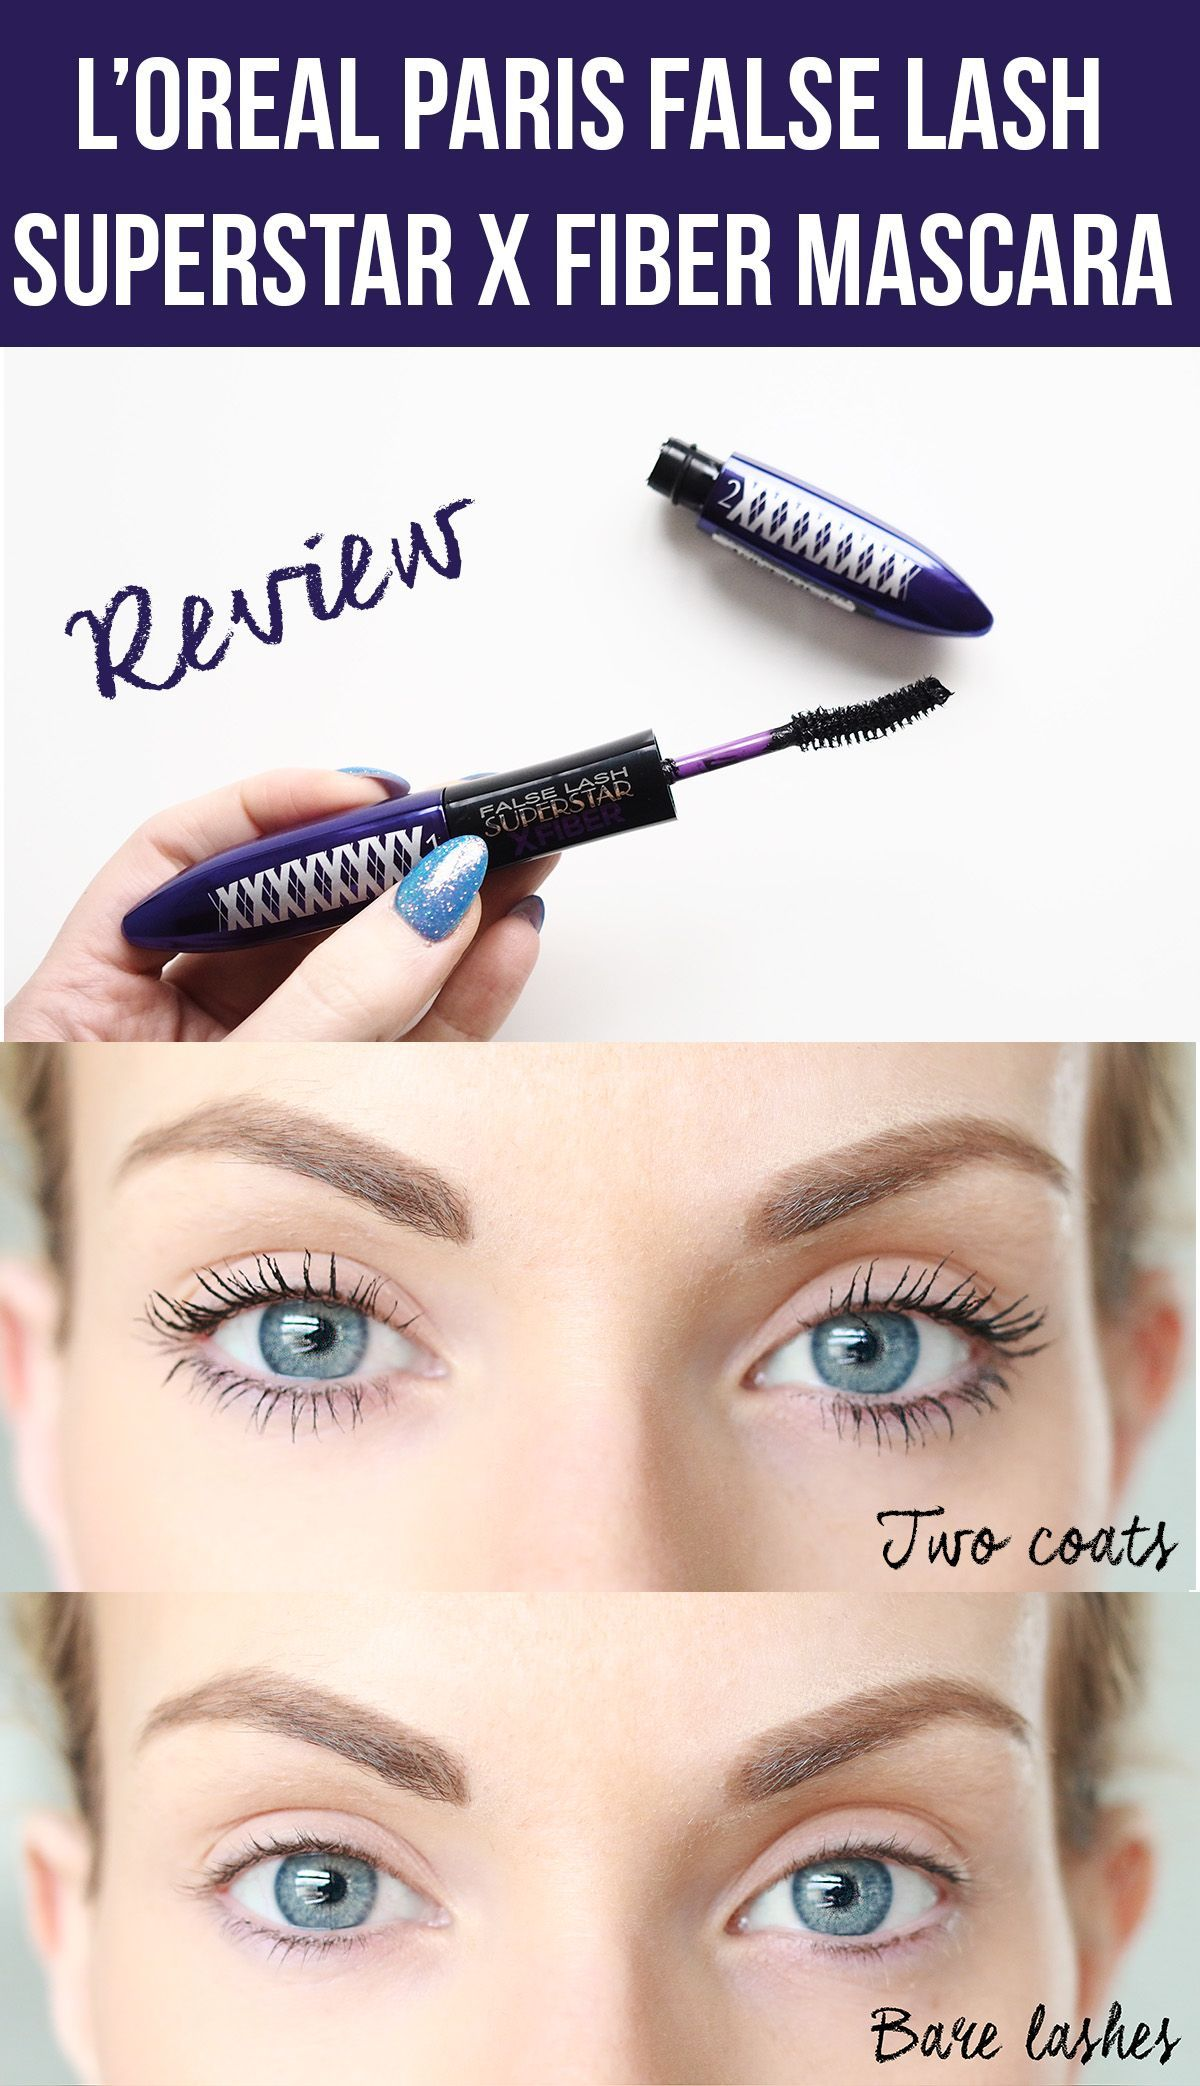 83f3535f697 L'Oreal Paris False Lash Superstar X Fiber Mascara Review Plus Before And  After Photos #ClumpyMascara